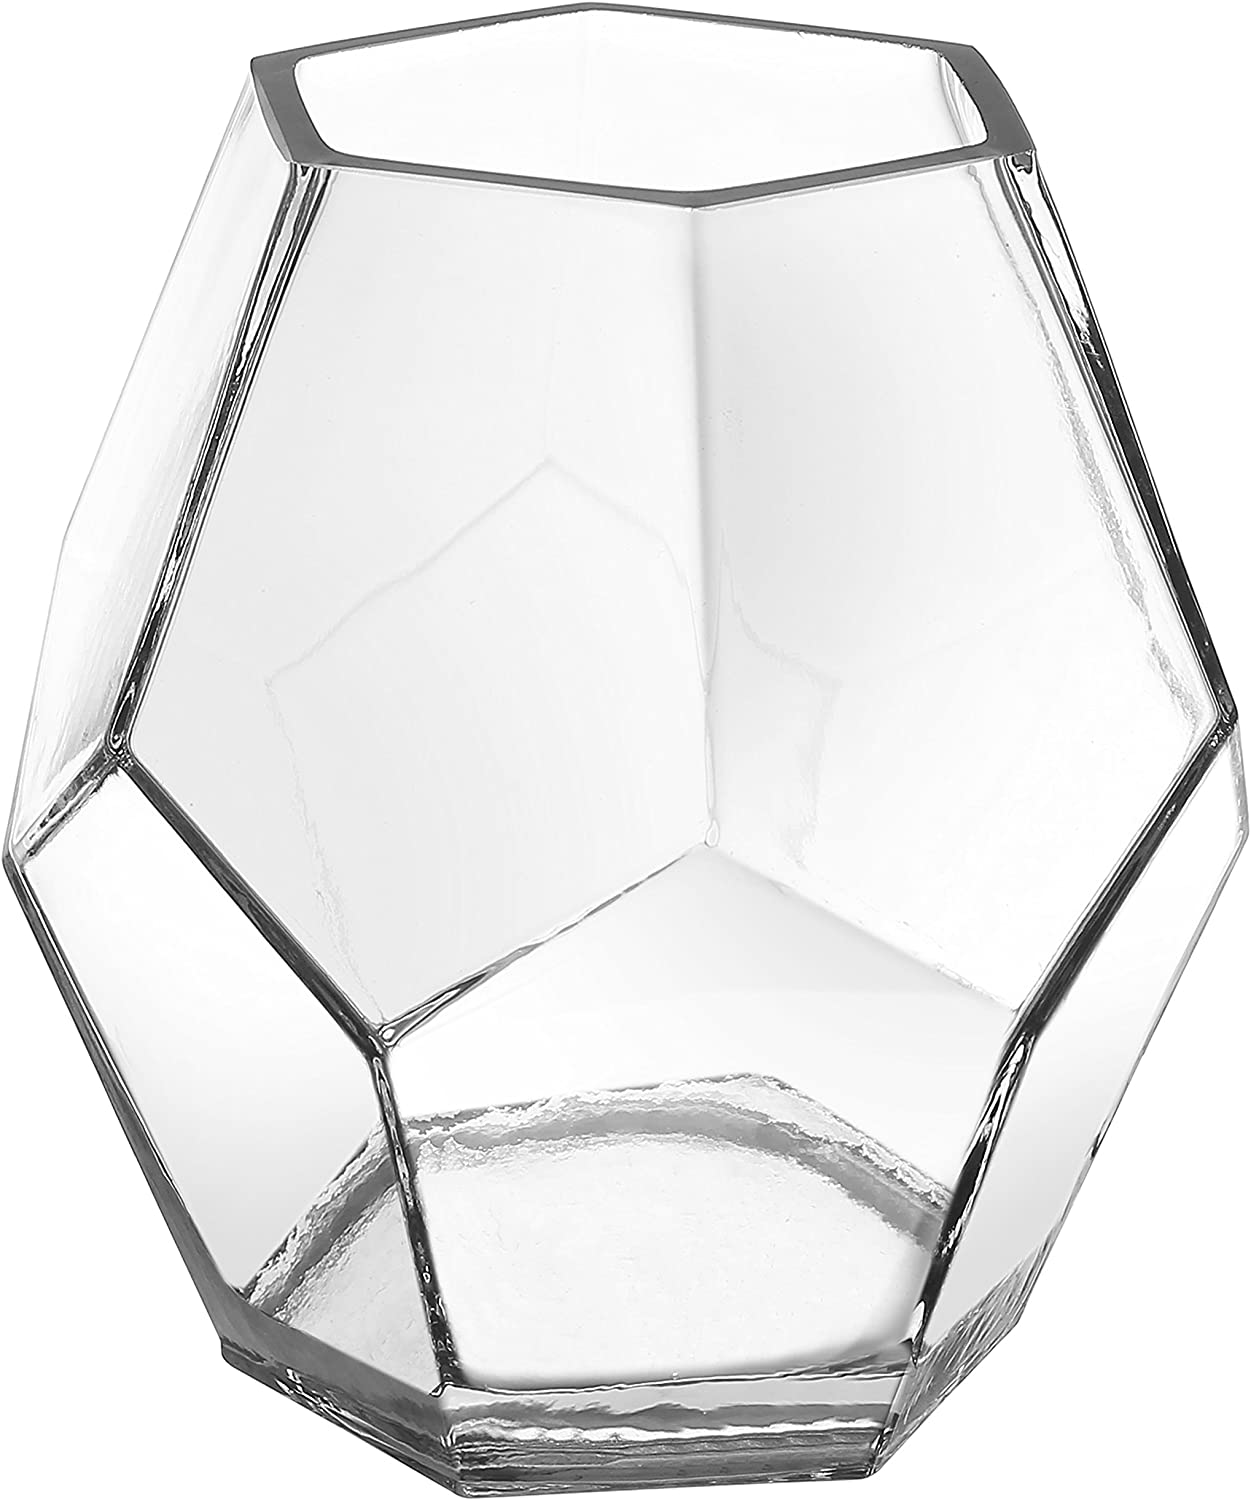 MyGift 5-inch Clear Glass Hexagon Shape Flower Vase, Tabletop Prism Wedding Party Decor